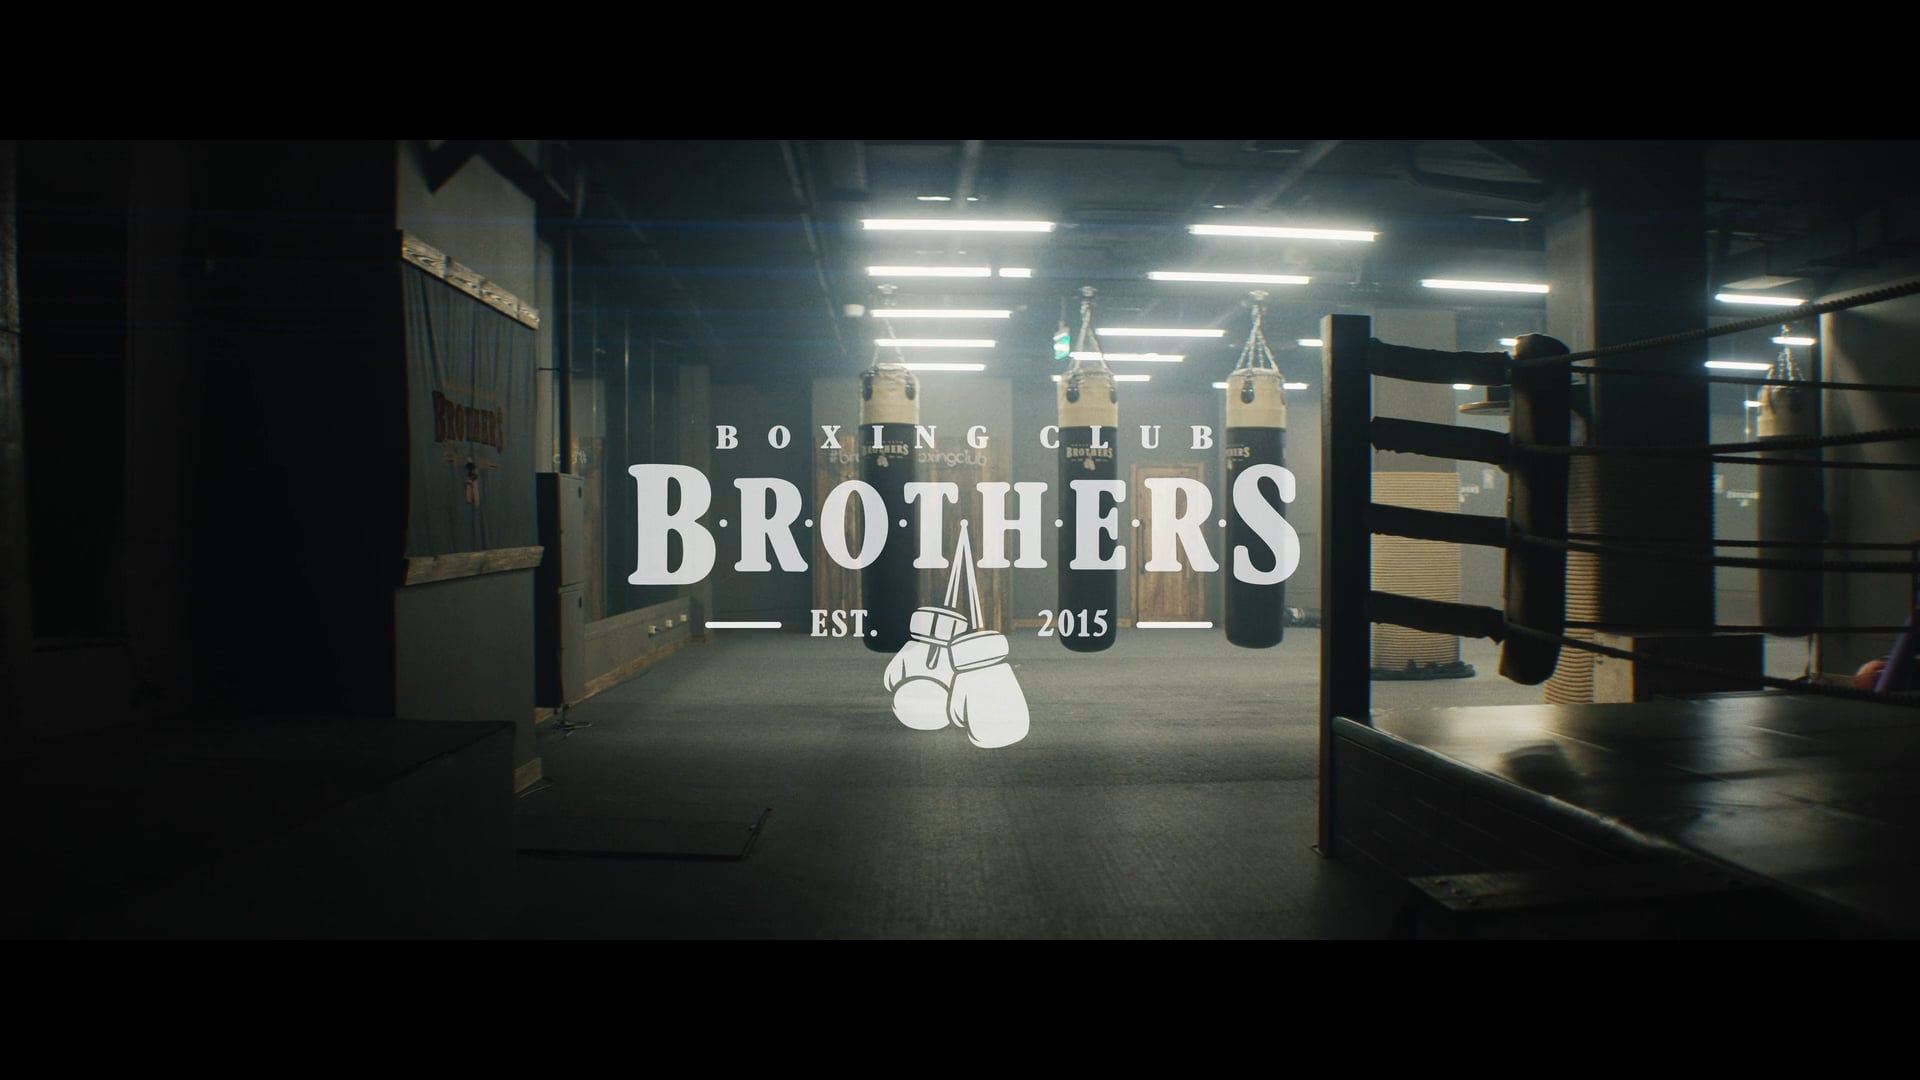 BROTHERS BOXING